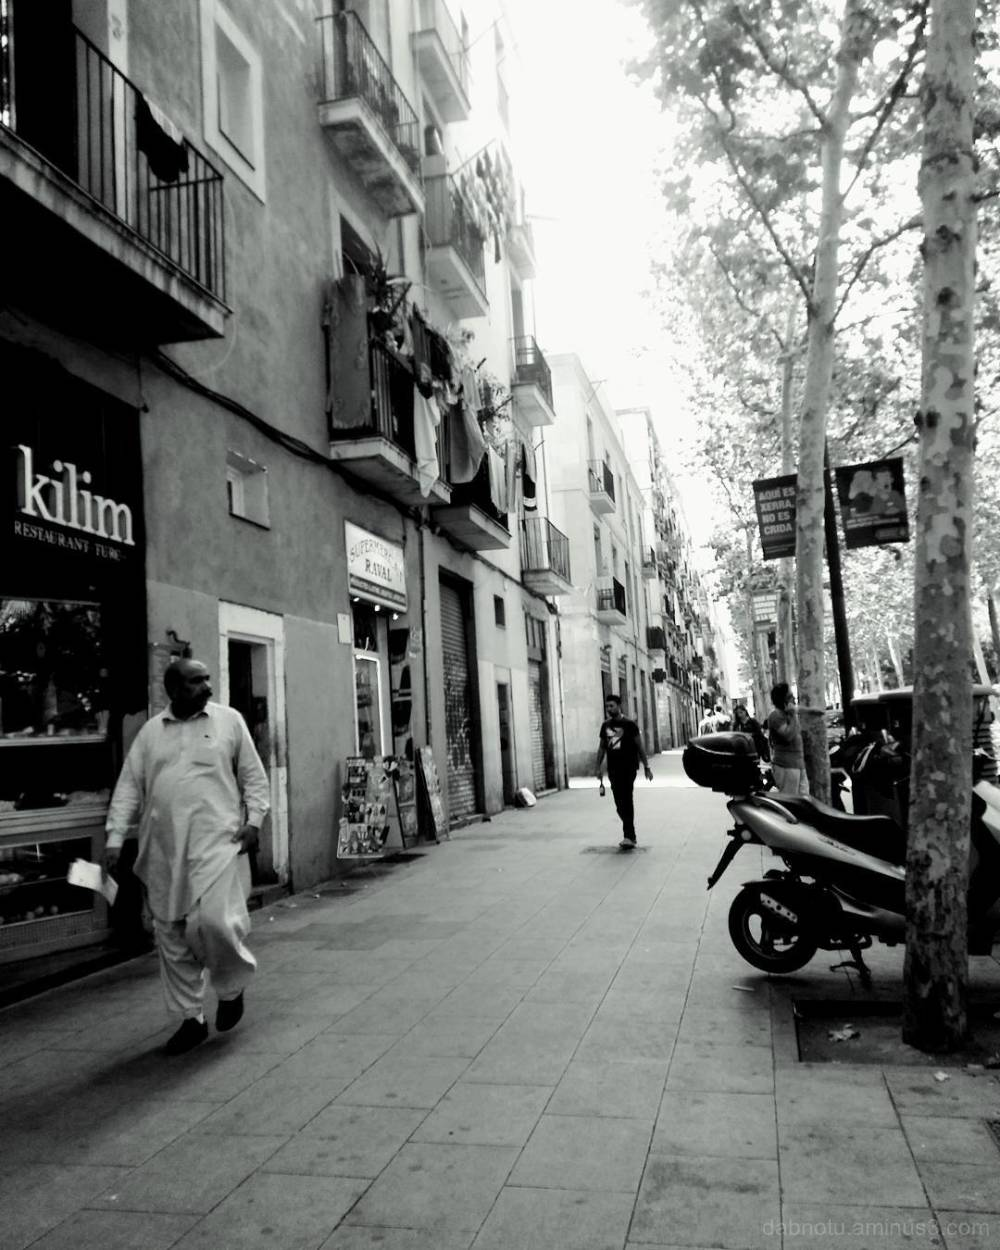 Barcelona edited smart/street photography.